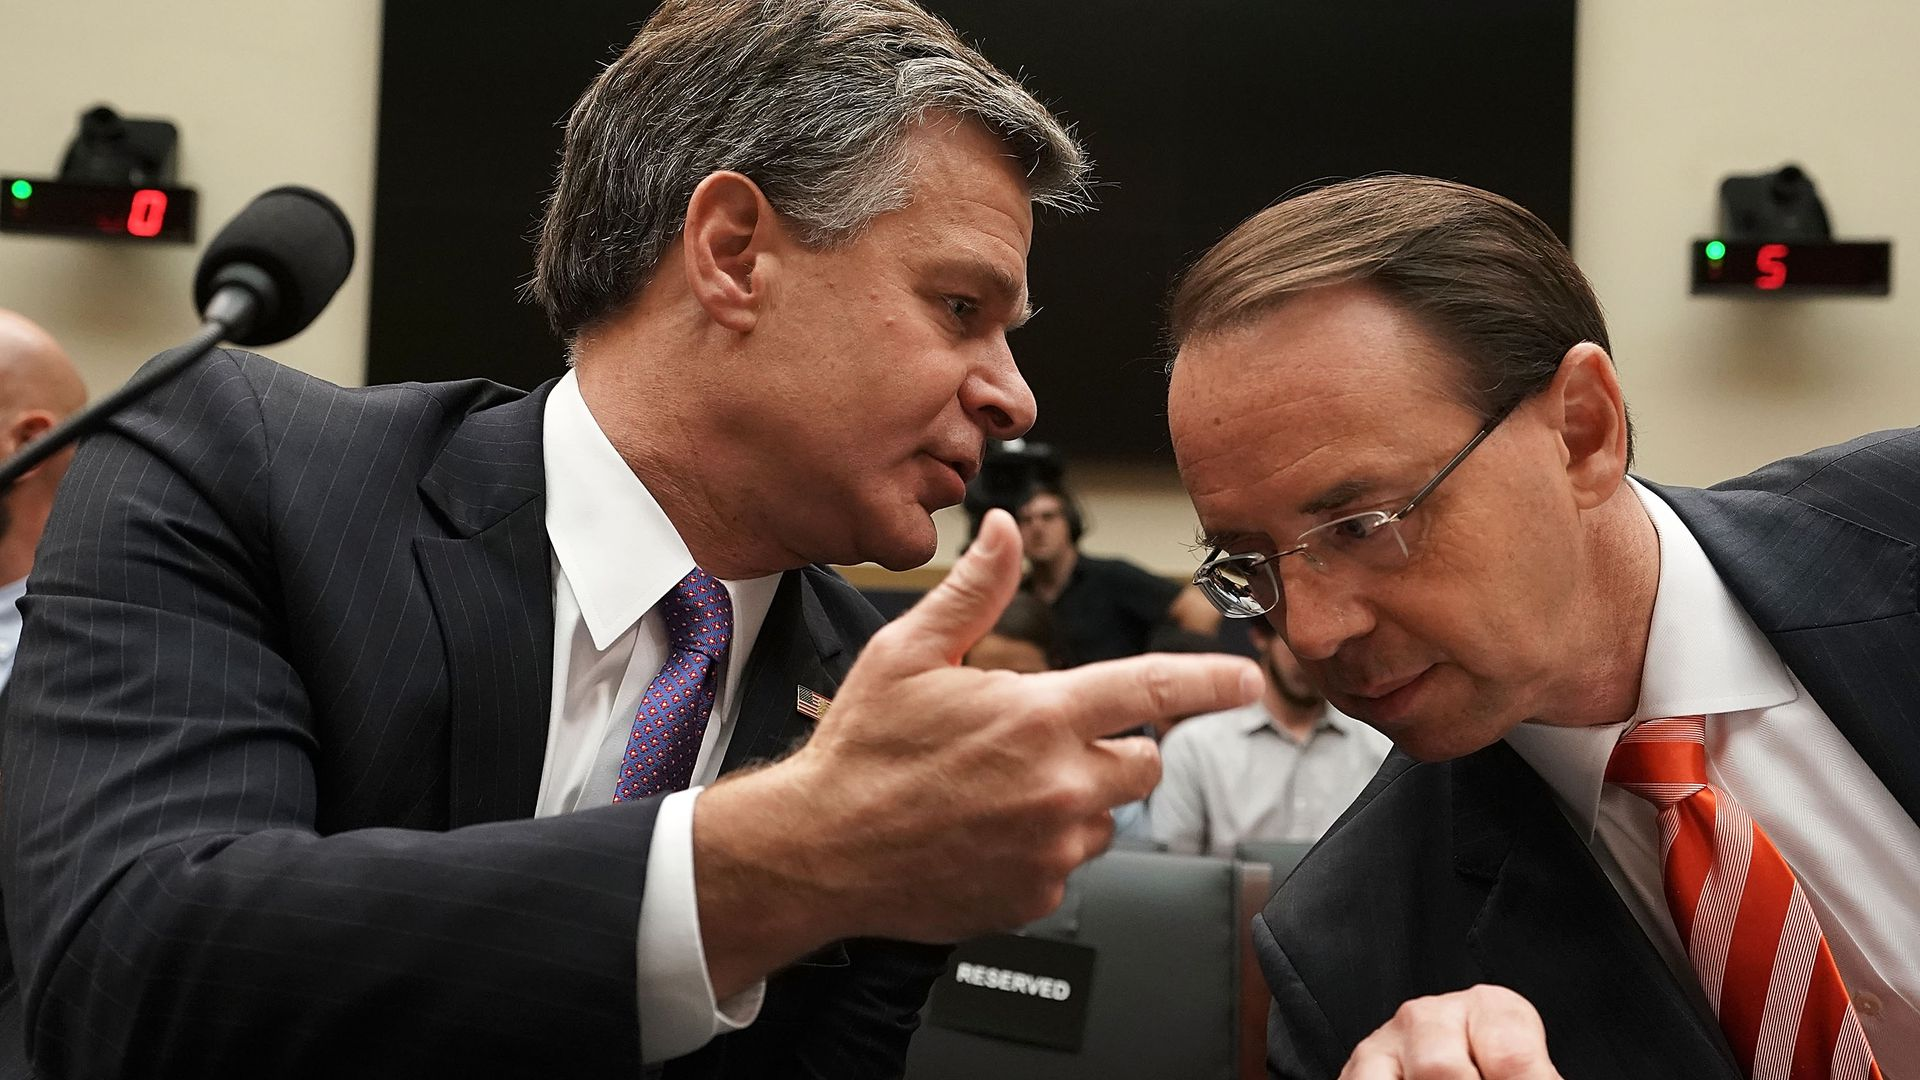 FBI director Christopher Wray leaning over to talk to Rod Rosenstein